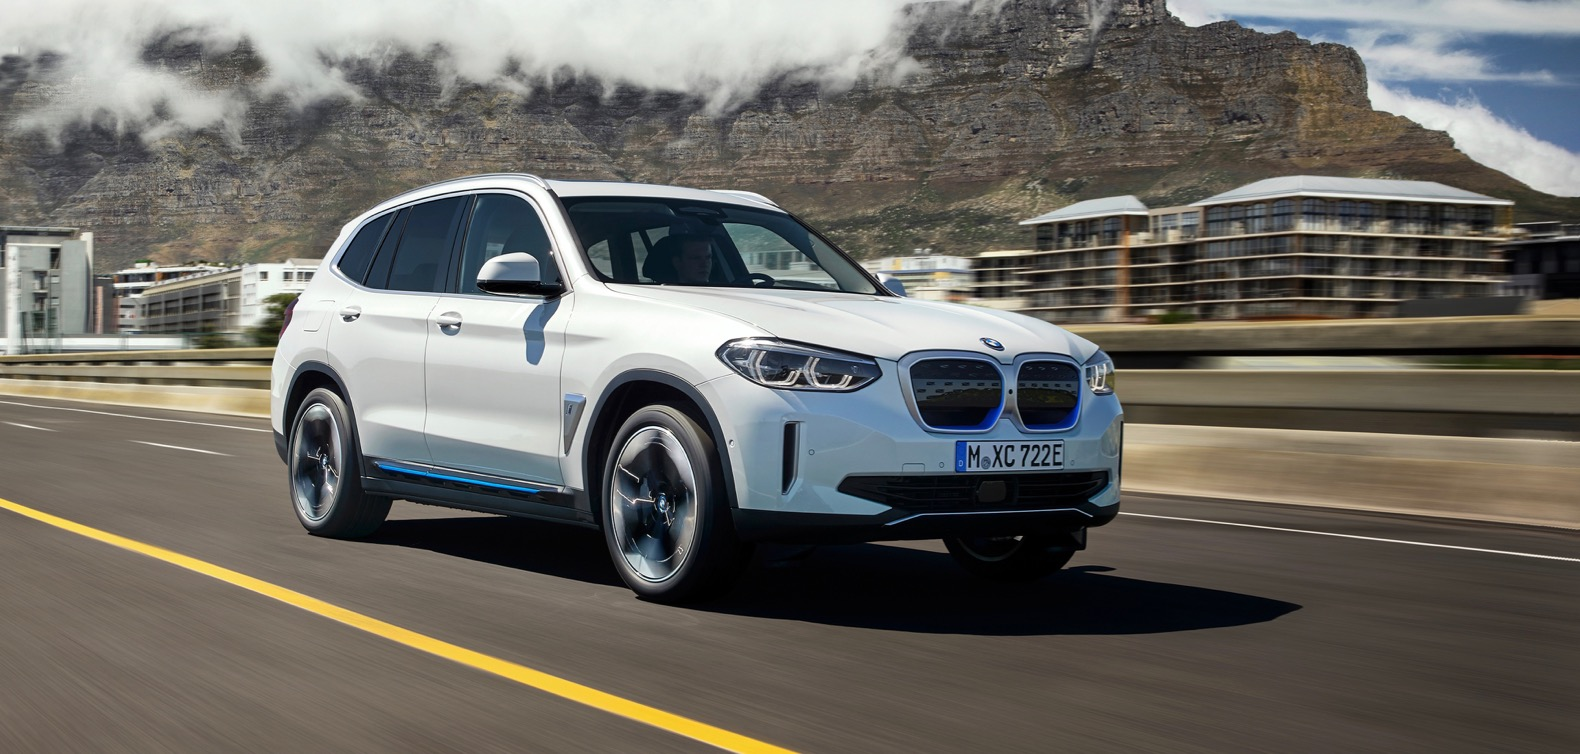 2021 bmw ix3 is the brand's first electric suv | the